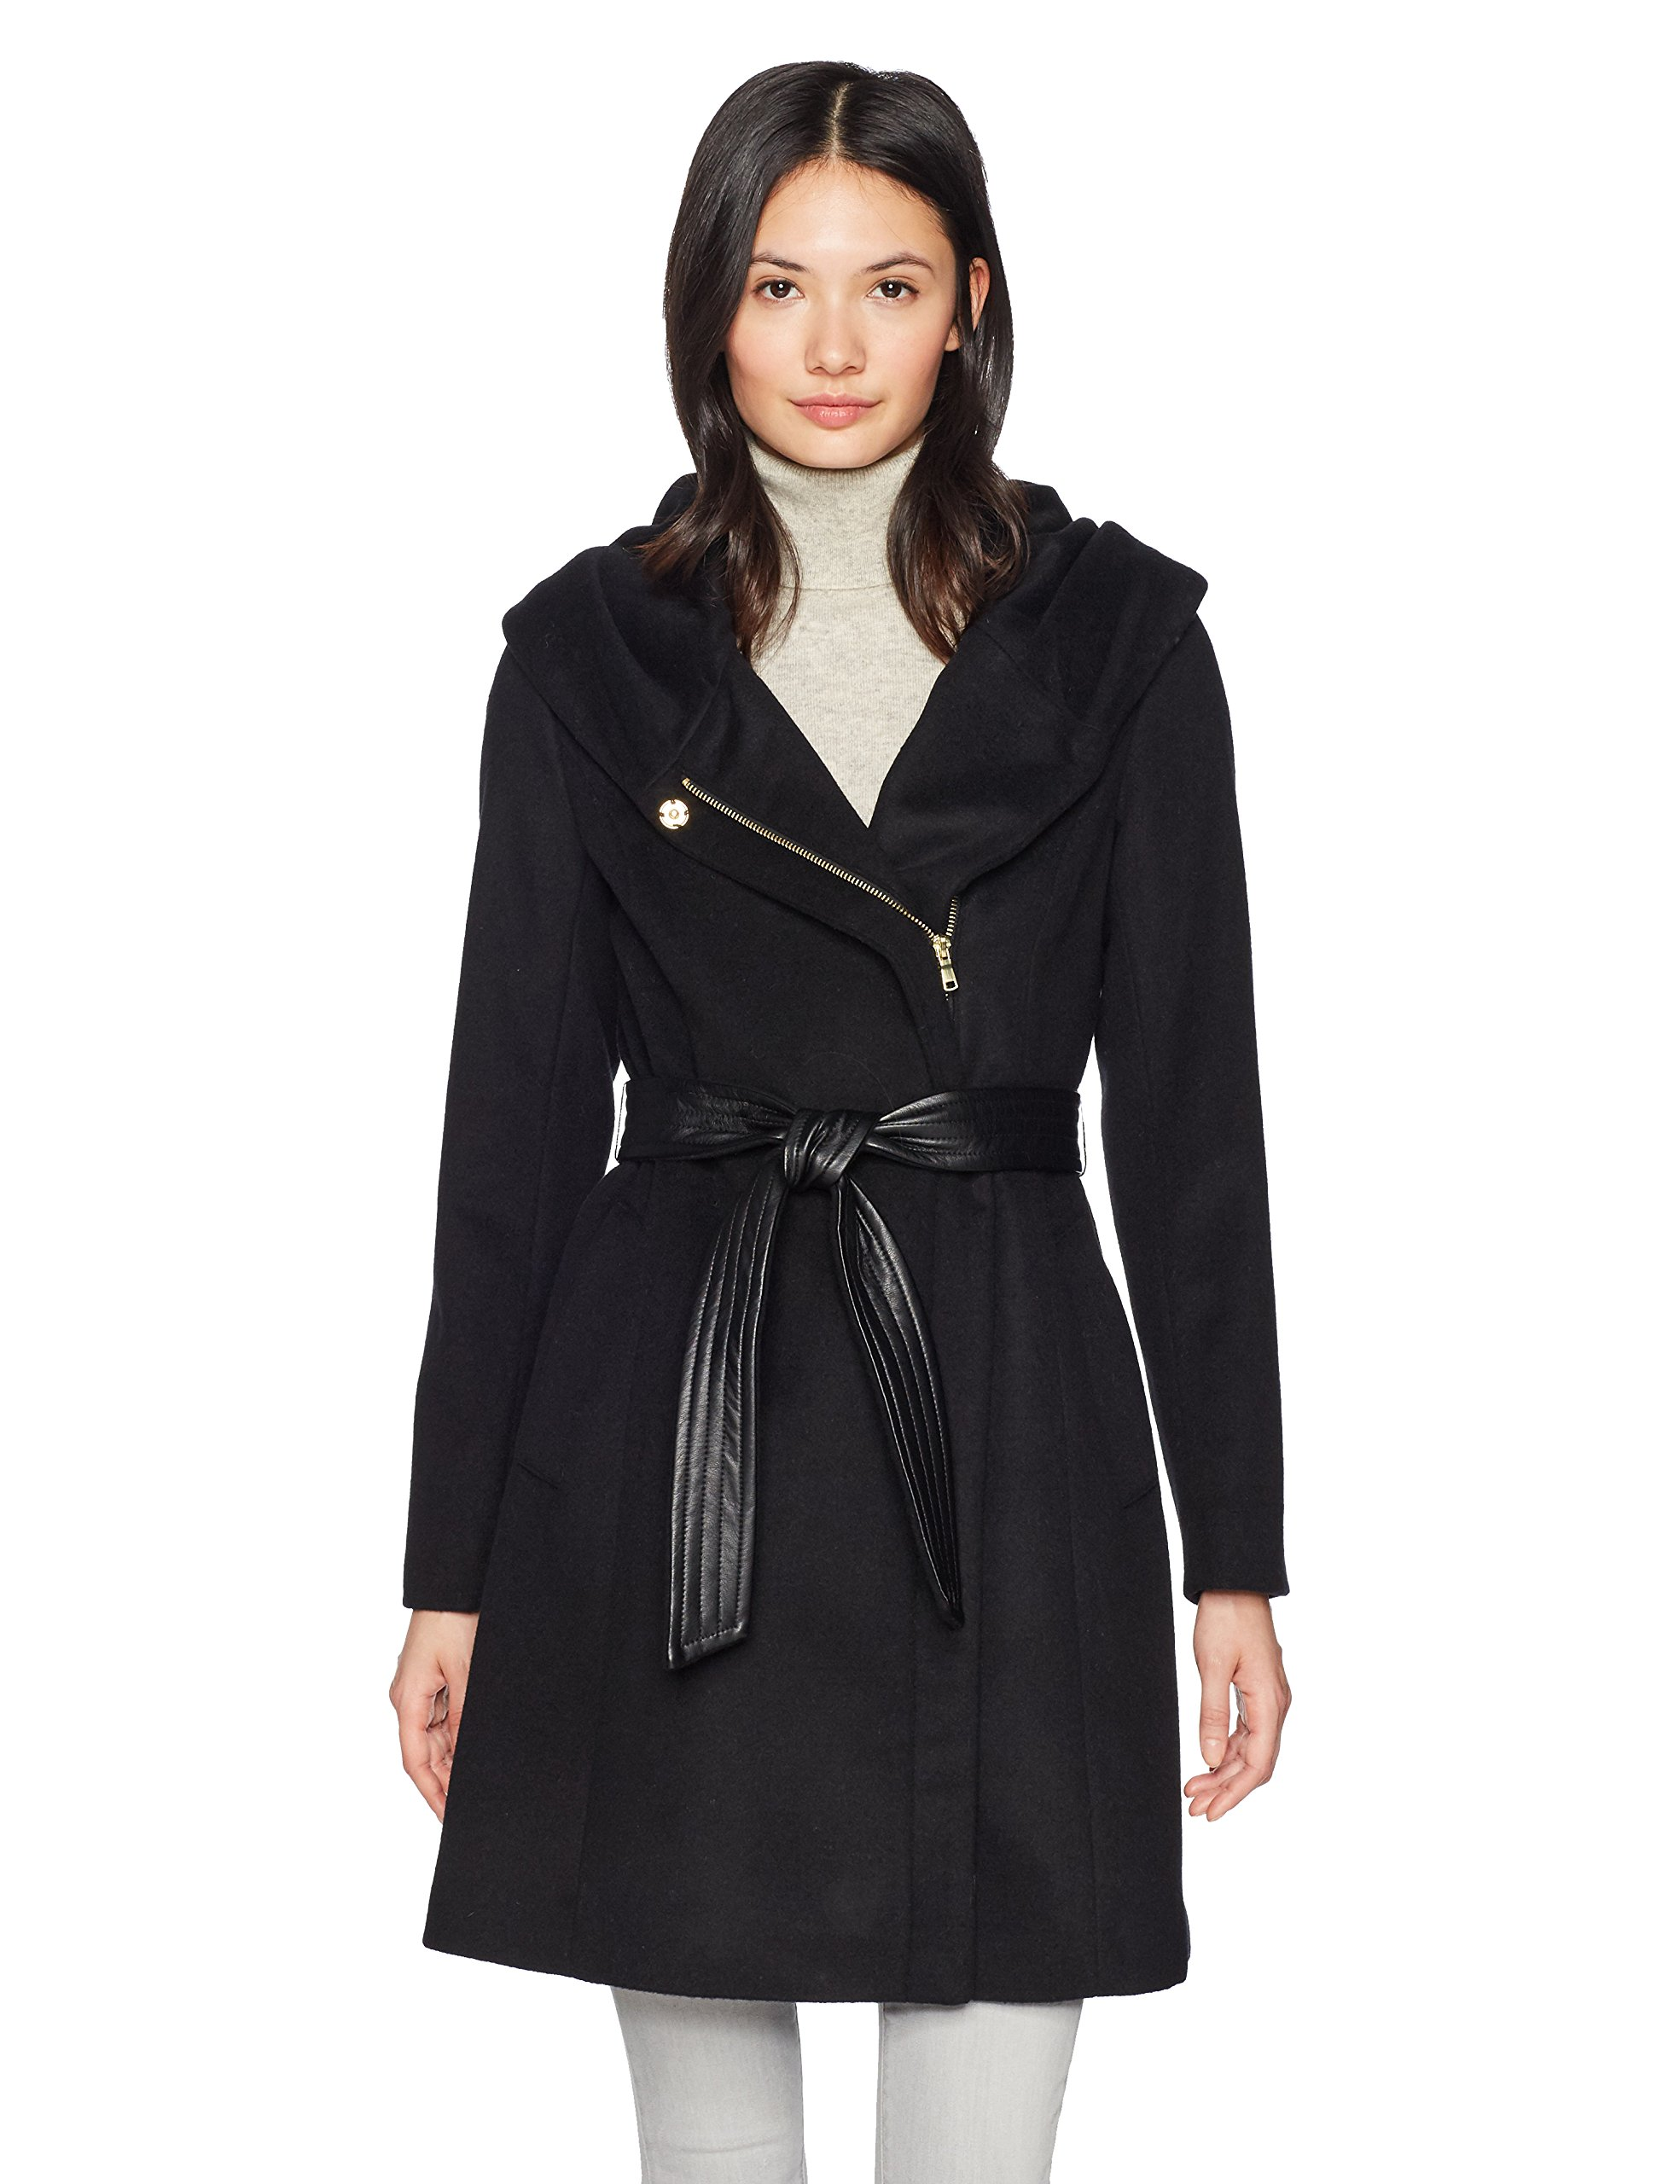 Cole Haan Women's Belted Asymmetrical Wool Coat with Oversized Hood, Black, 10 by Cole Haan